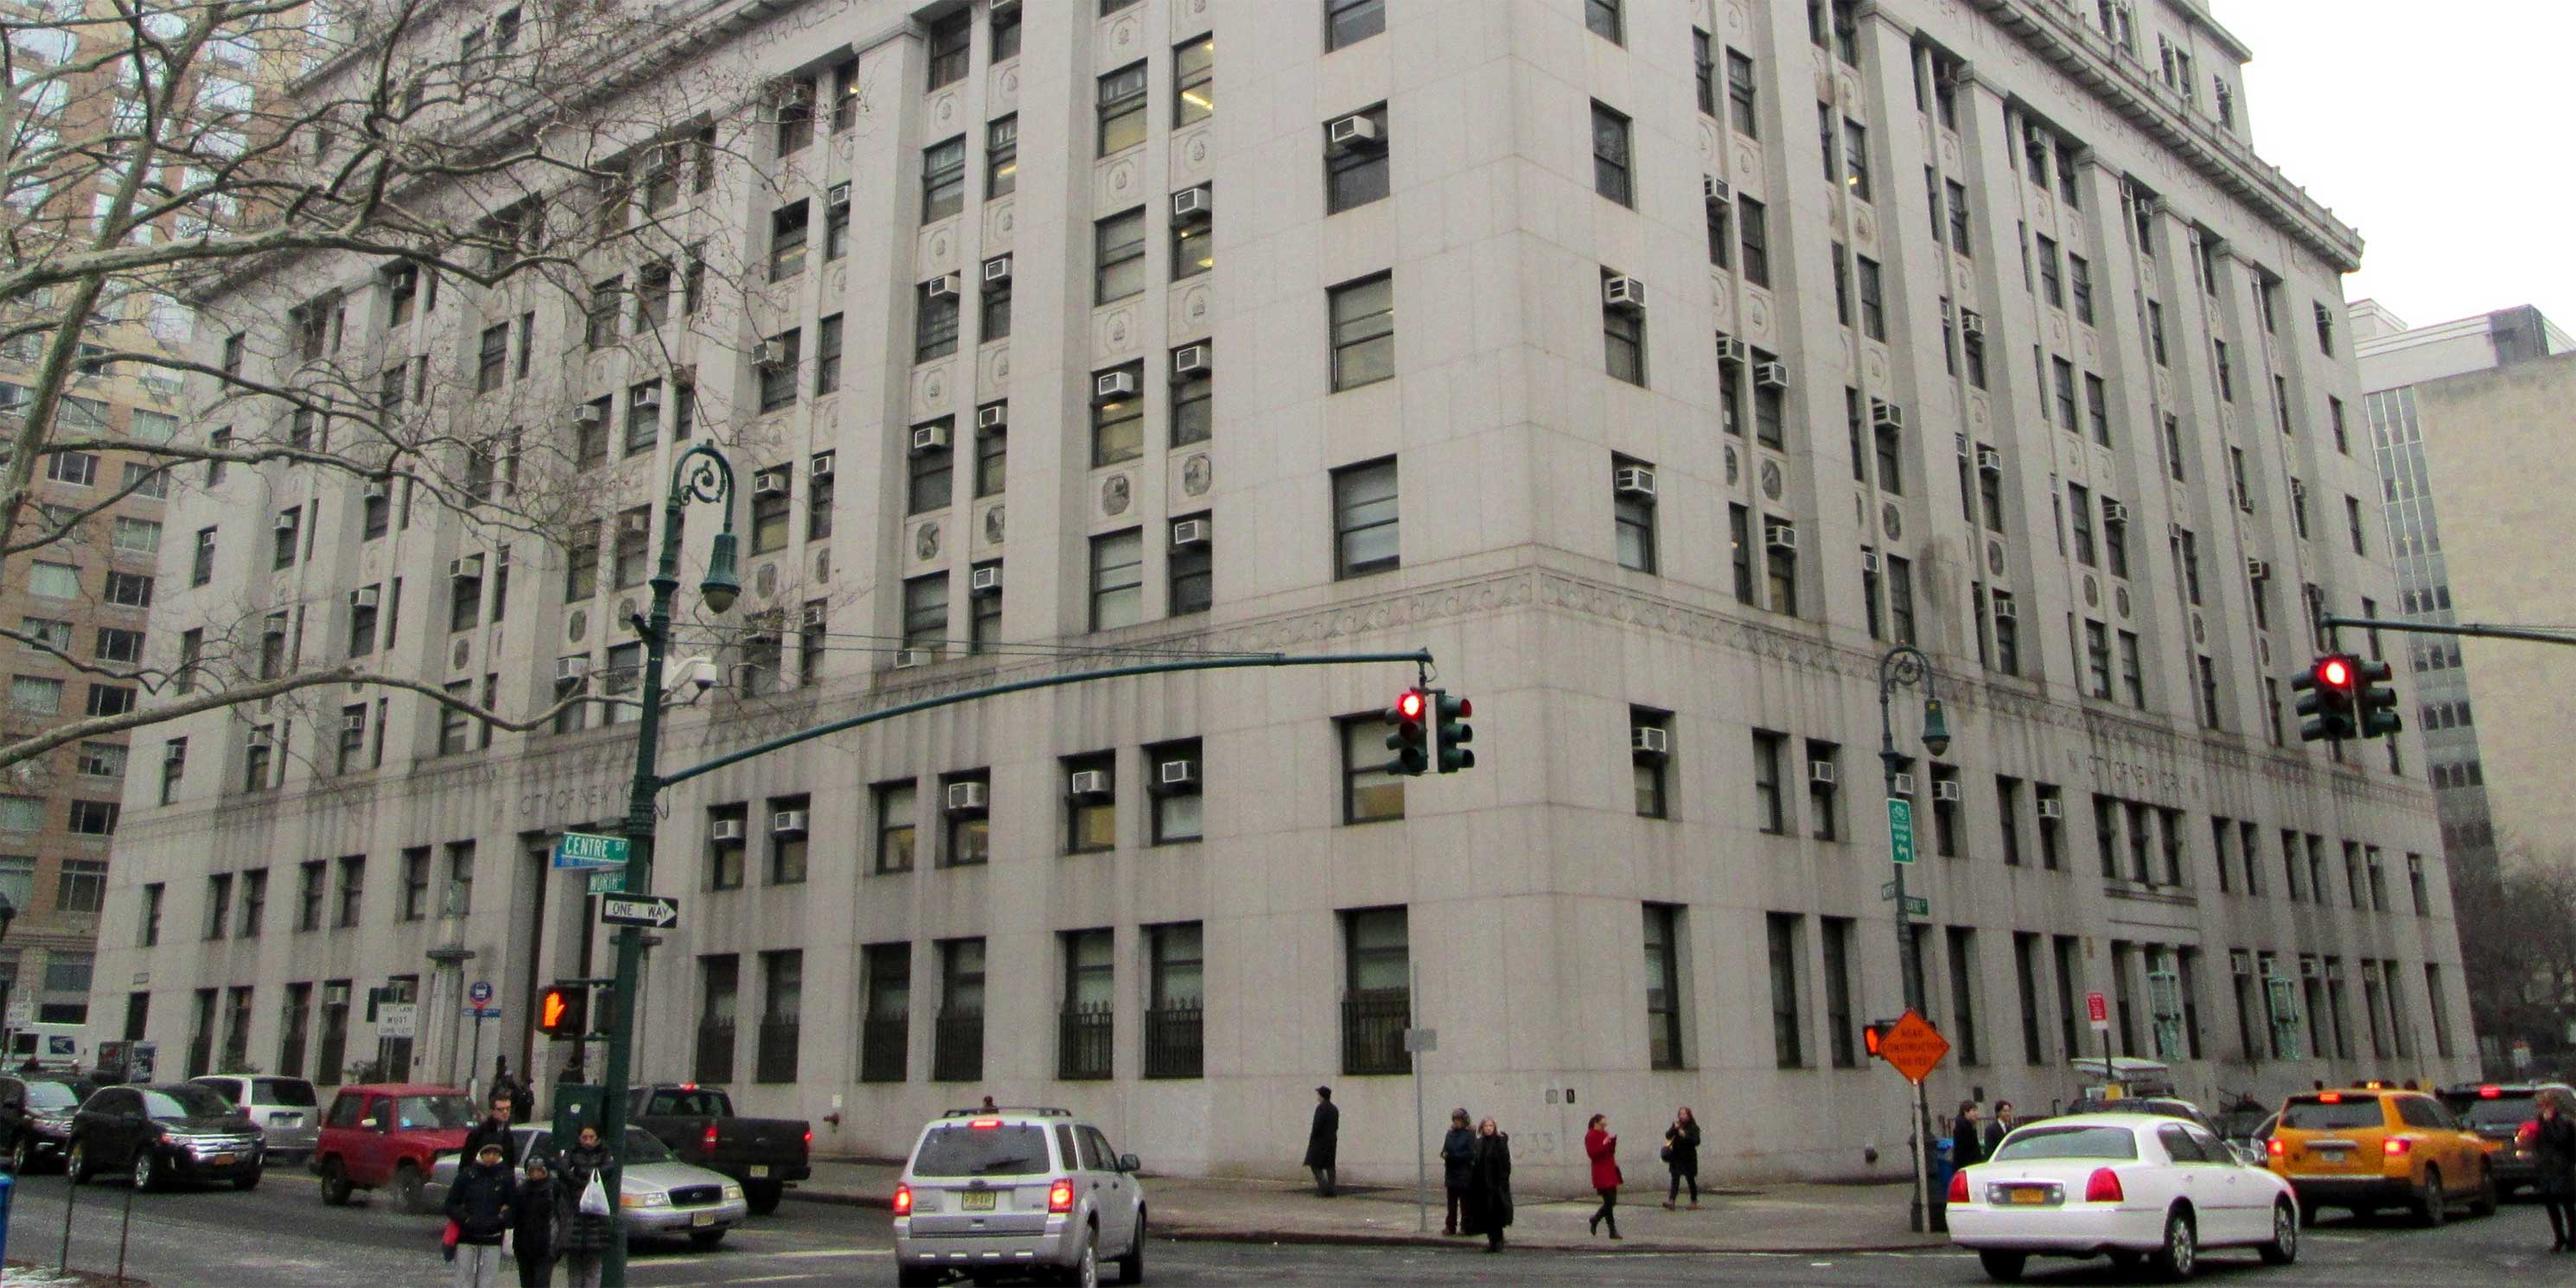 exterior of the Health Building at 125 Worth Street